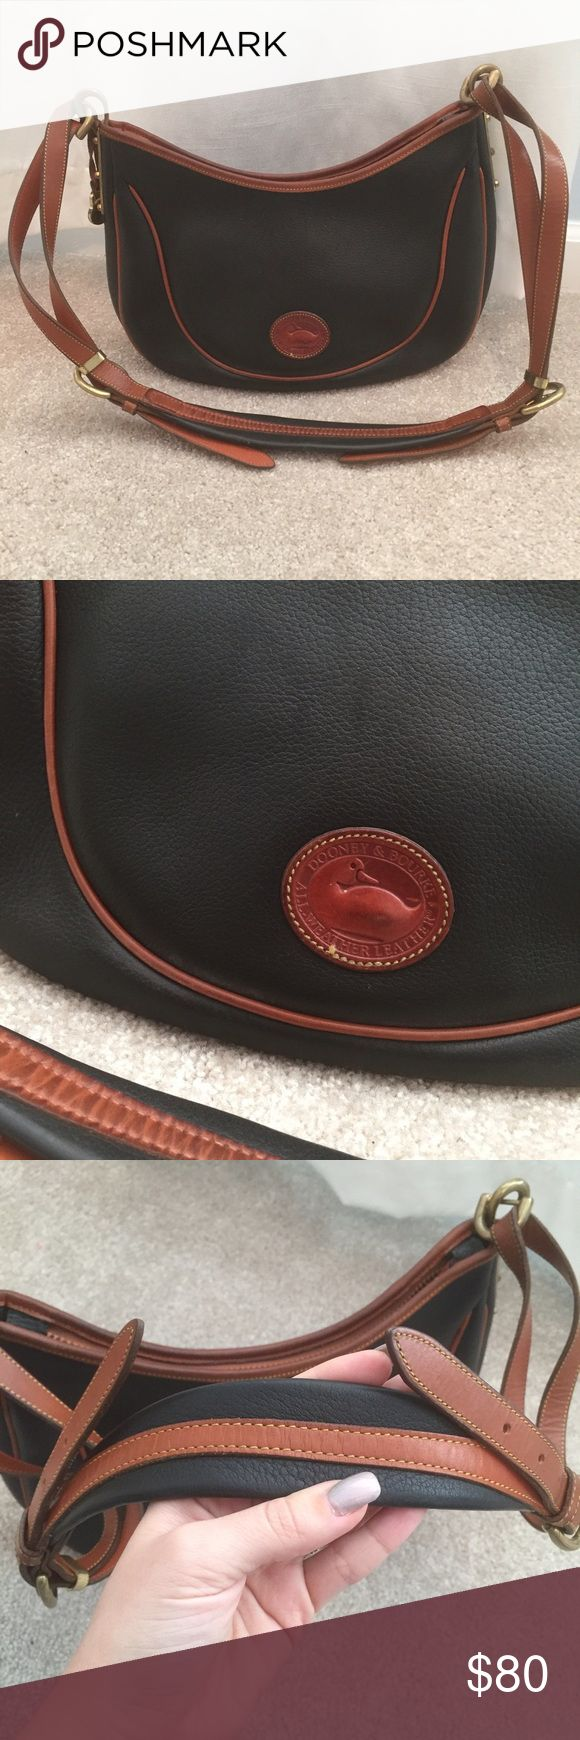 Dooney and Bourke navy purse Authentic navy and tan Dooney and Bourke in good condition with brass details. Suede inside. Dooney & Bourke Bags Shoulder Bags